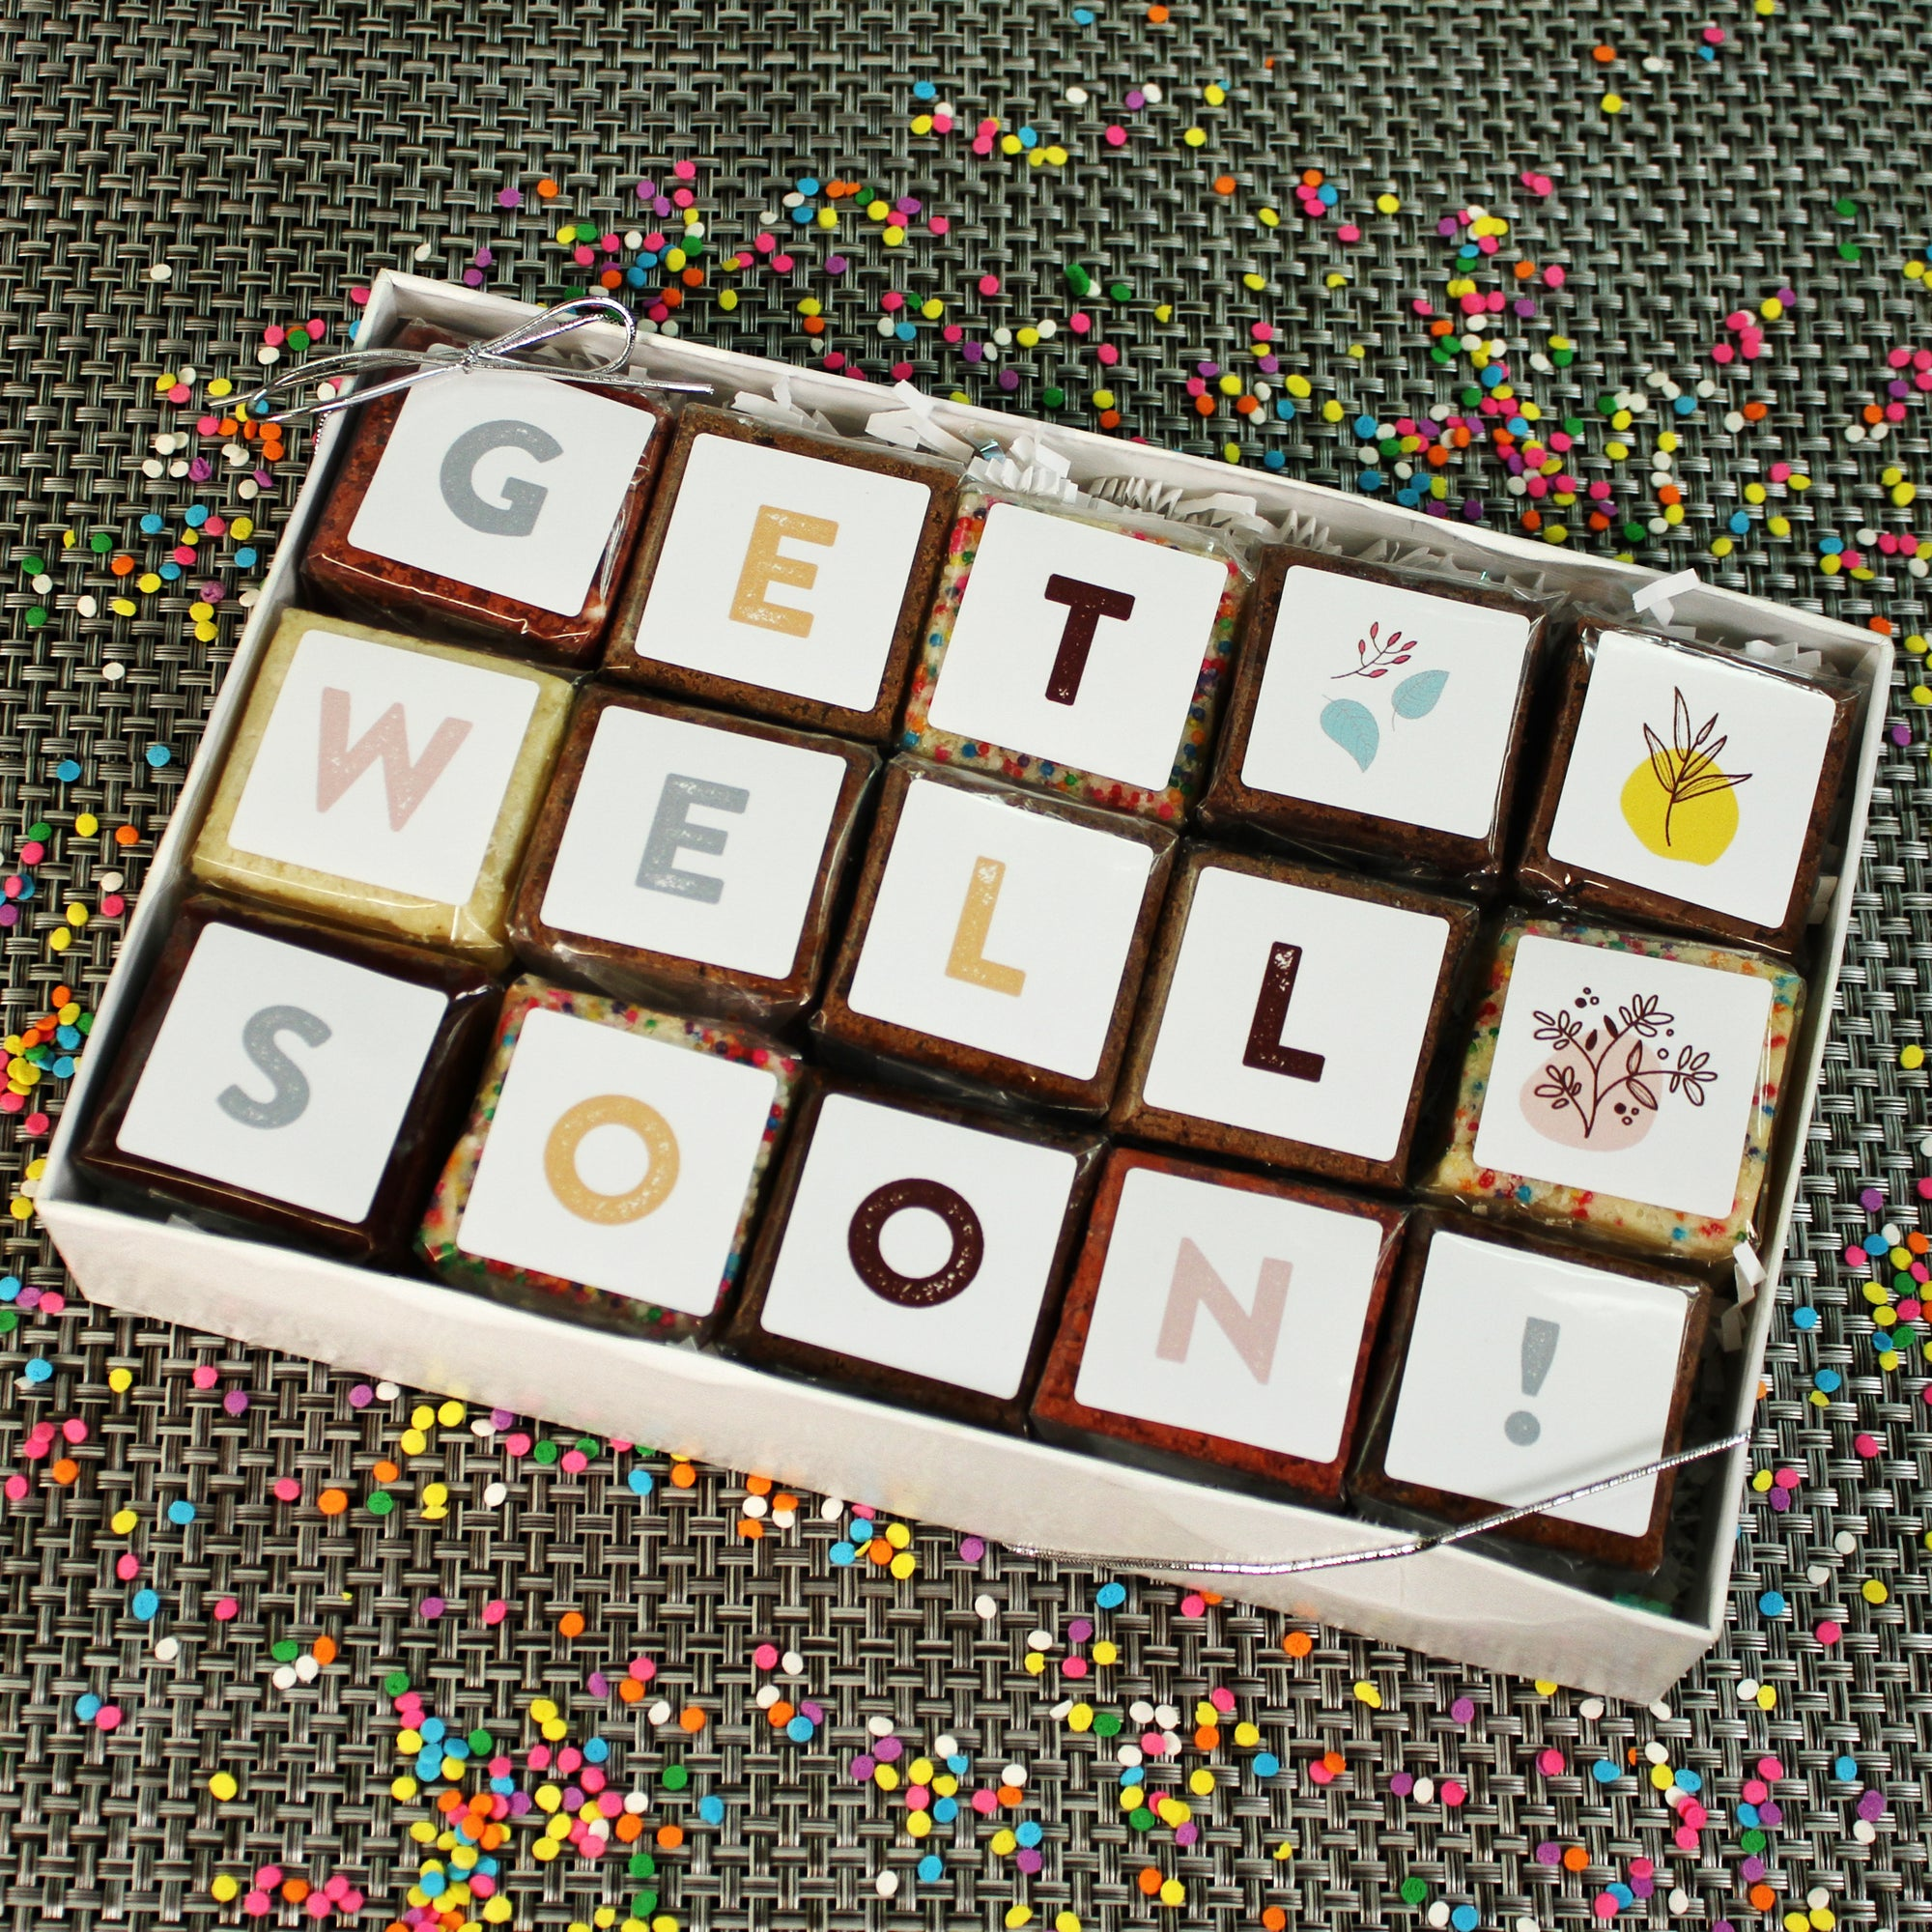 Get Well Gift of Brownies. Get Well BrownieGram-Small Batch Brownies